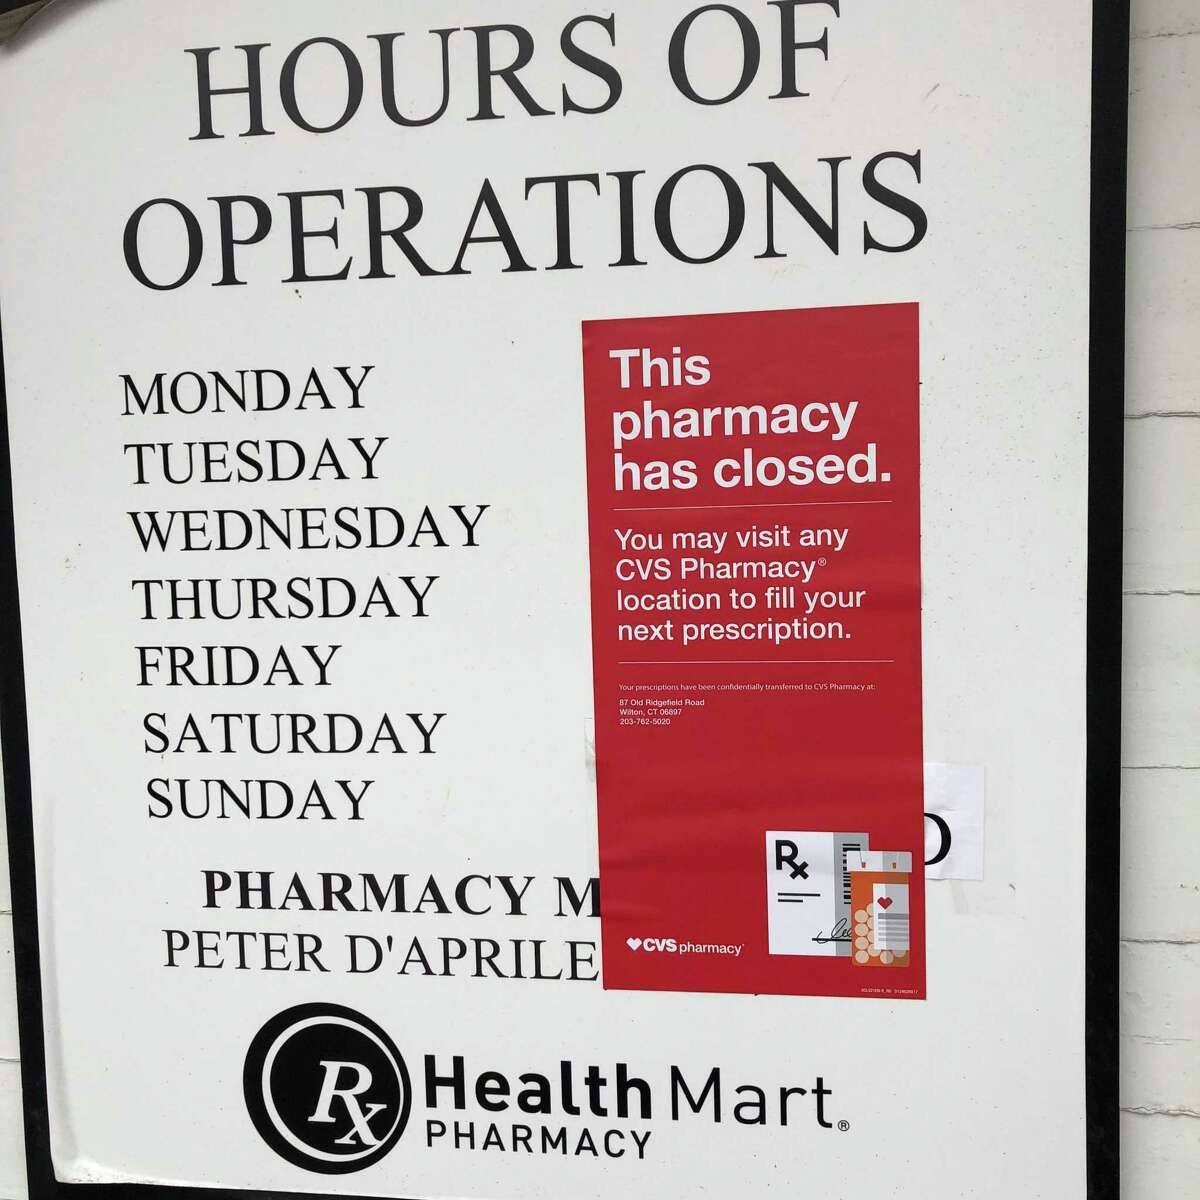 A sign posted on the Lang's Pharmacy in Wilton on Thursday, Feb. 13, announces that the pharmacy has closed and advises customers to fill their prescriptions at CVS Pharmacy.